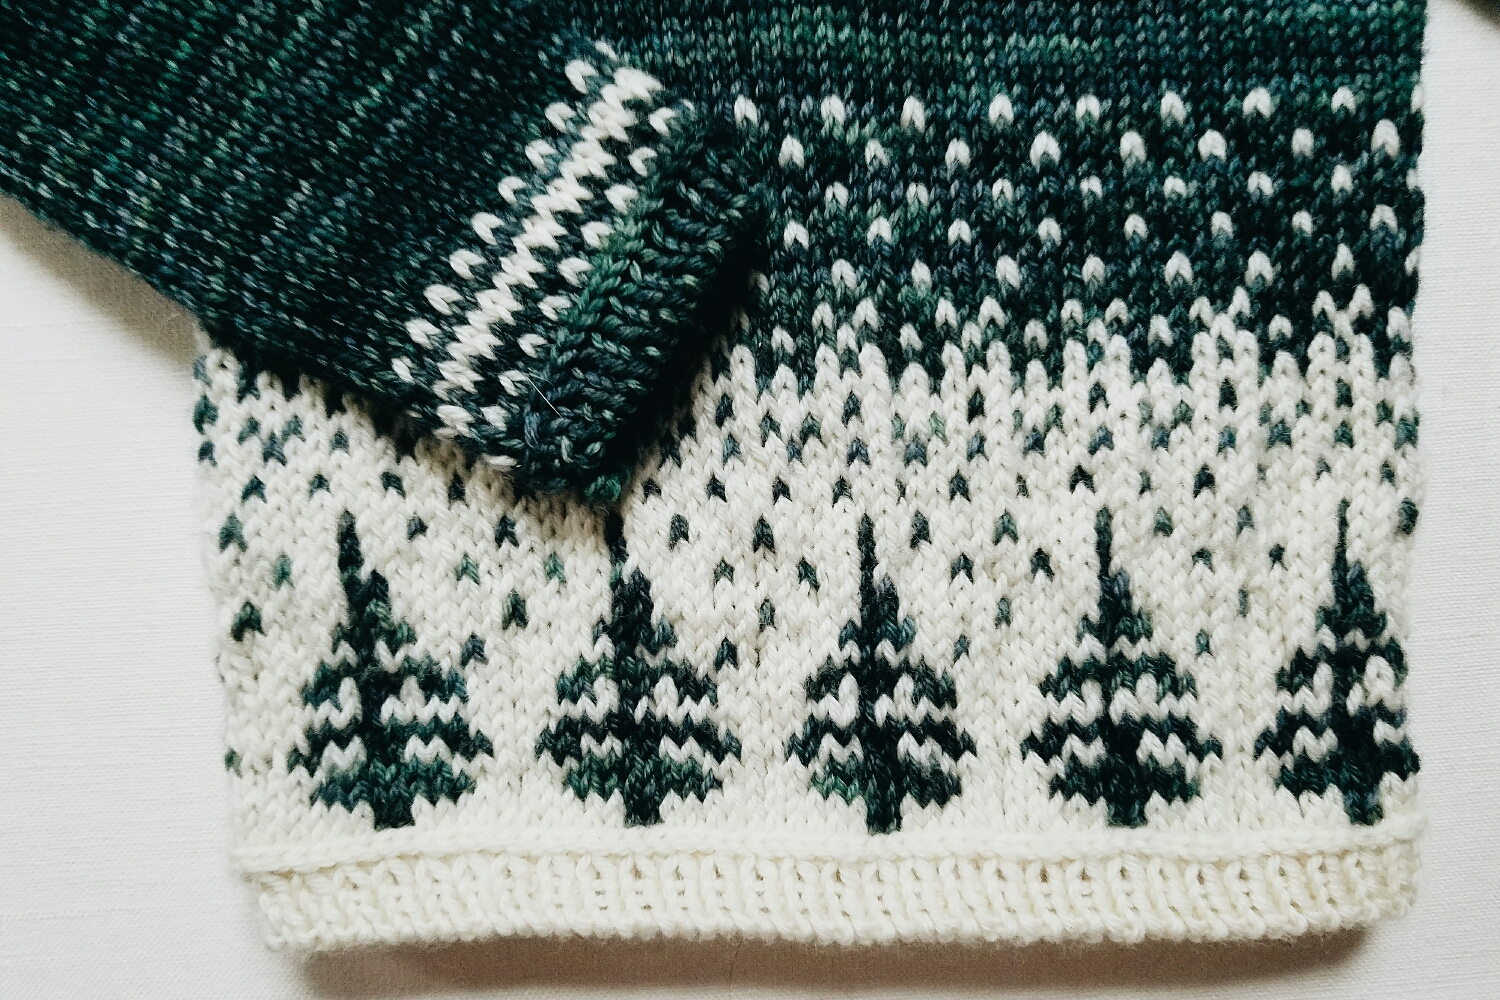 Details on one of my favorite knits project to date, started on Whidbey and finished this week.